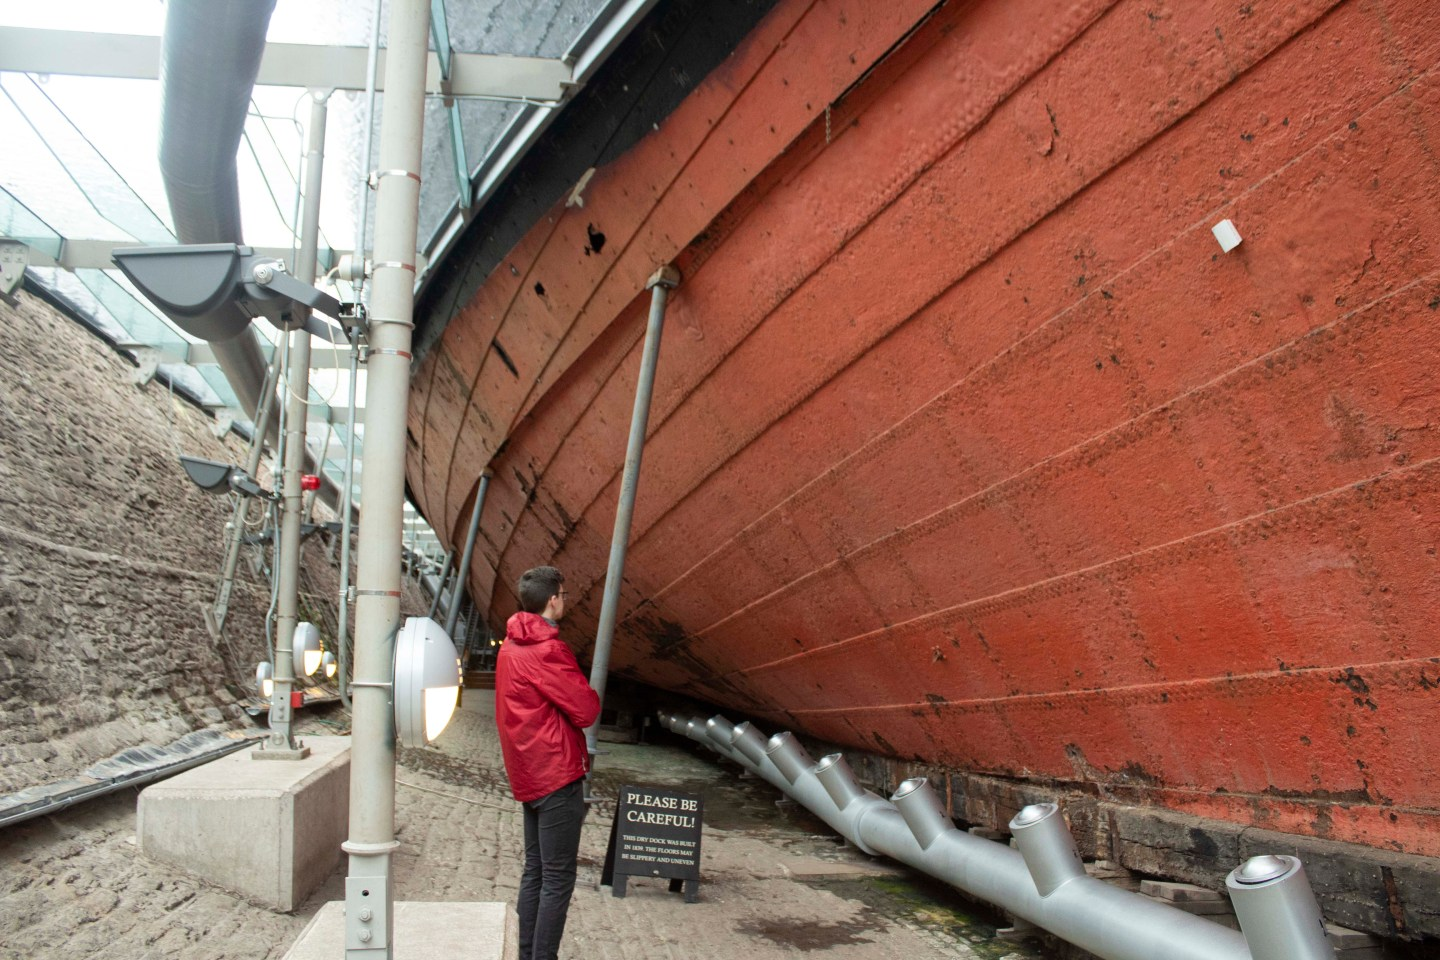 Visit Bristol In One Day Trip - Visit the SS Great Britain in Bristol's harbourside for an immersive taste of history, world exploration, and engineering! Step into the dry dock to see just how enormous the SS Great Britain is.